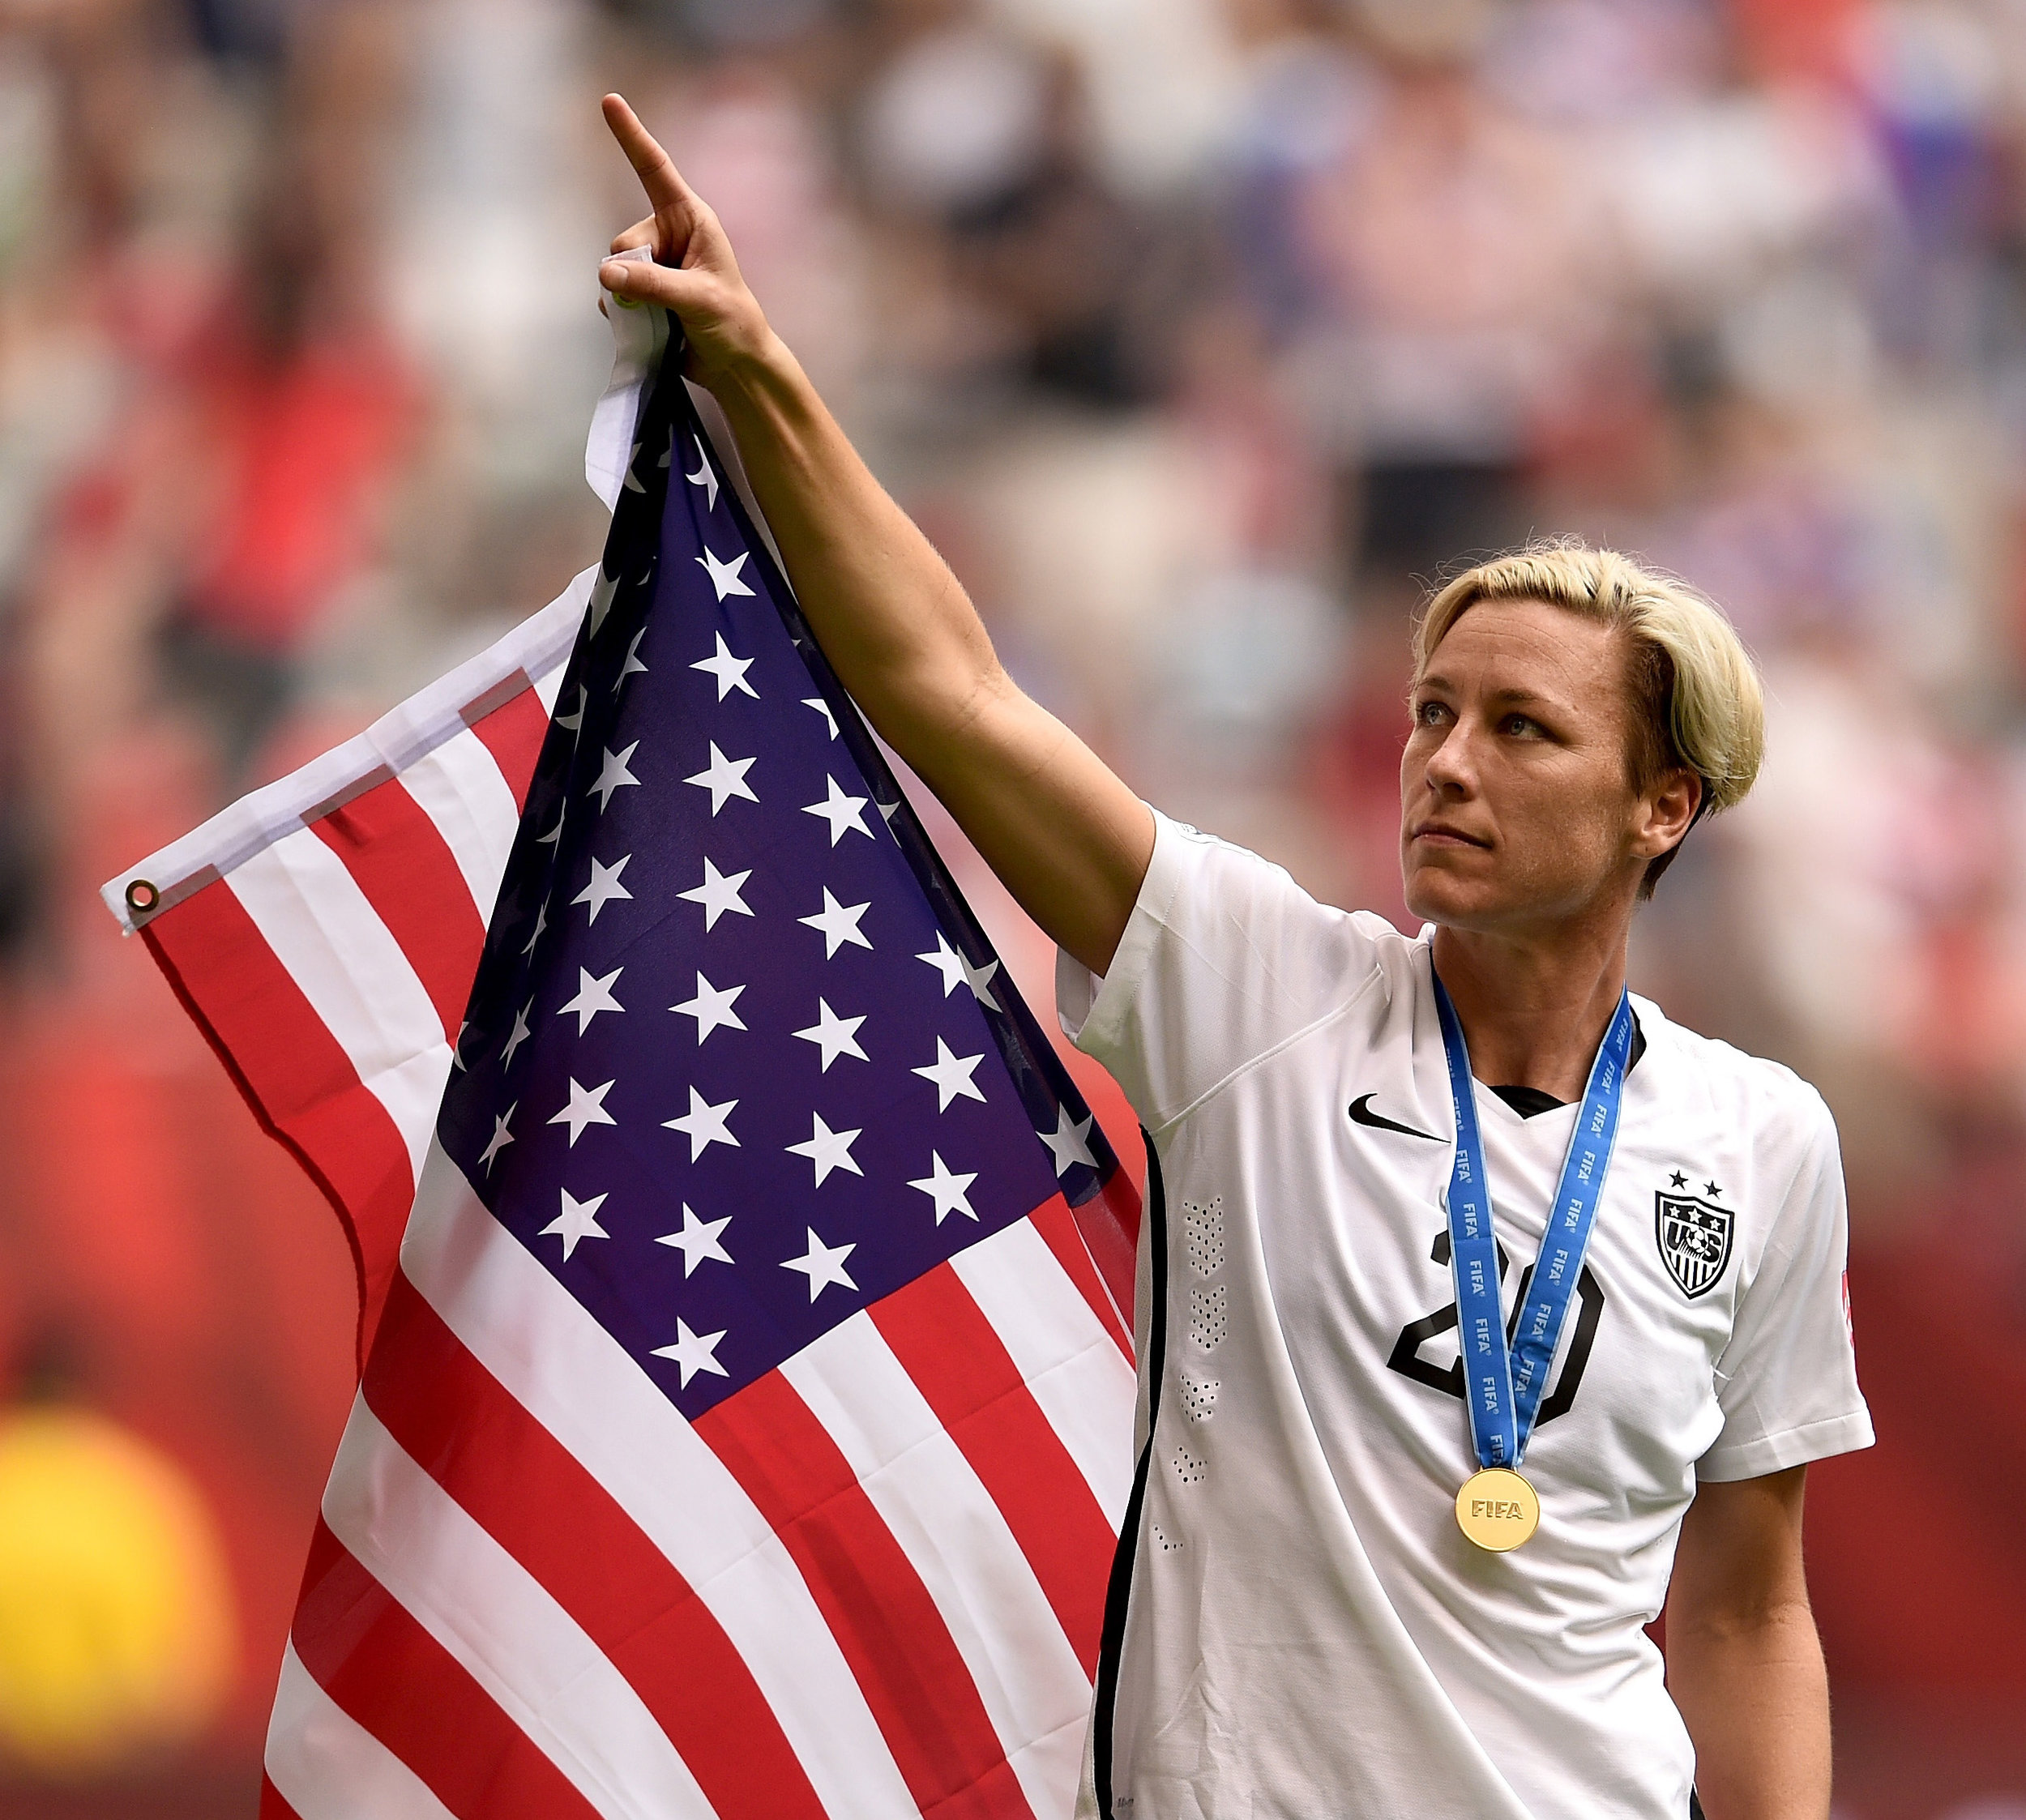 Abby Wambach - World record holder for international goals, highest all-time goal scorer for the U.S. national team